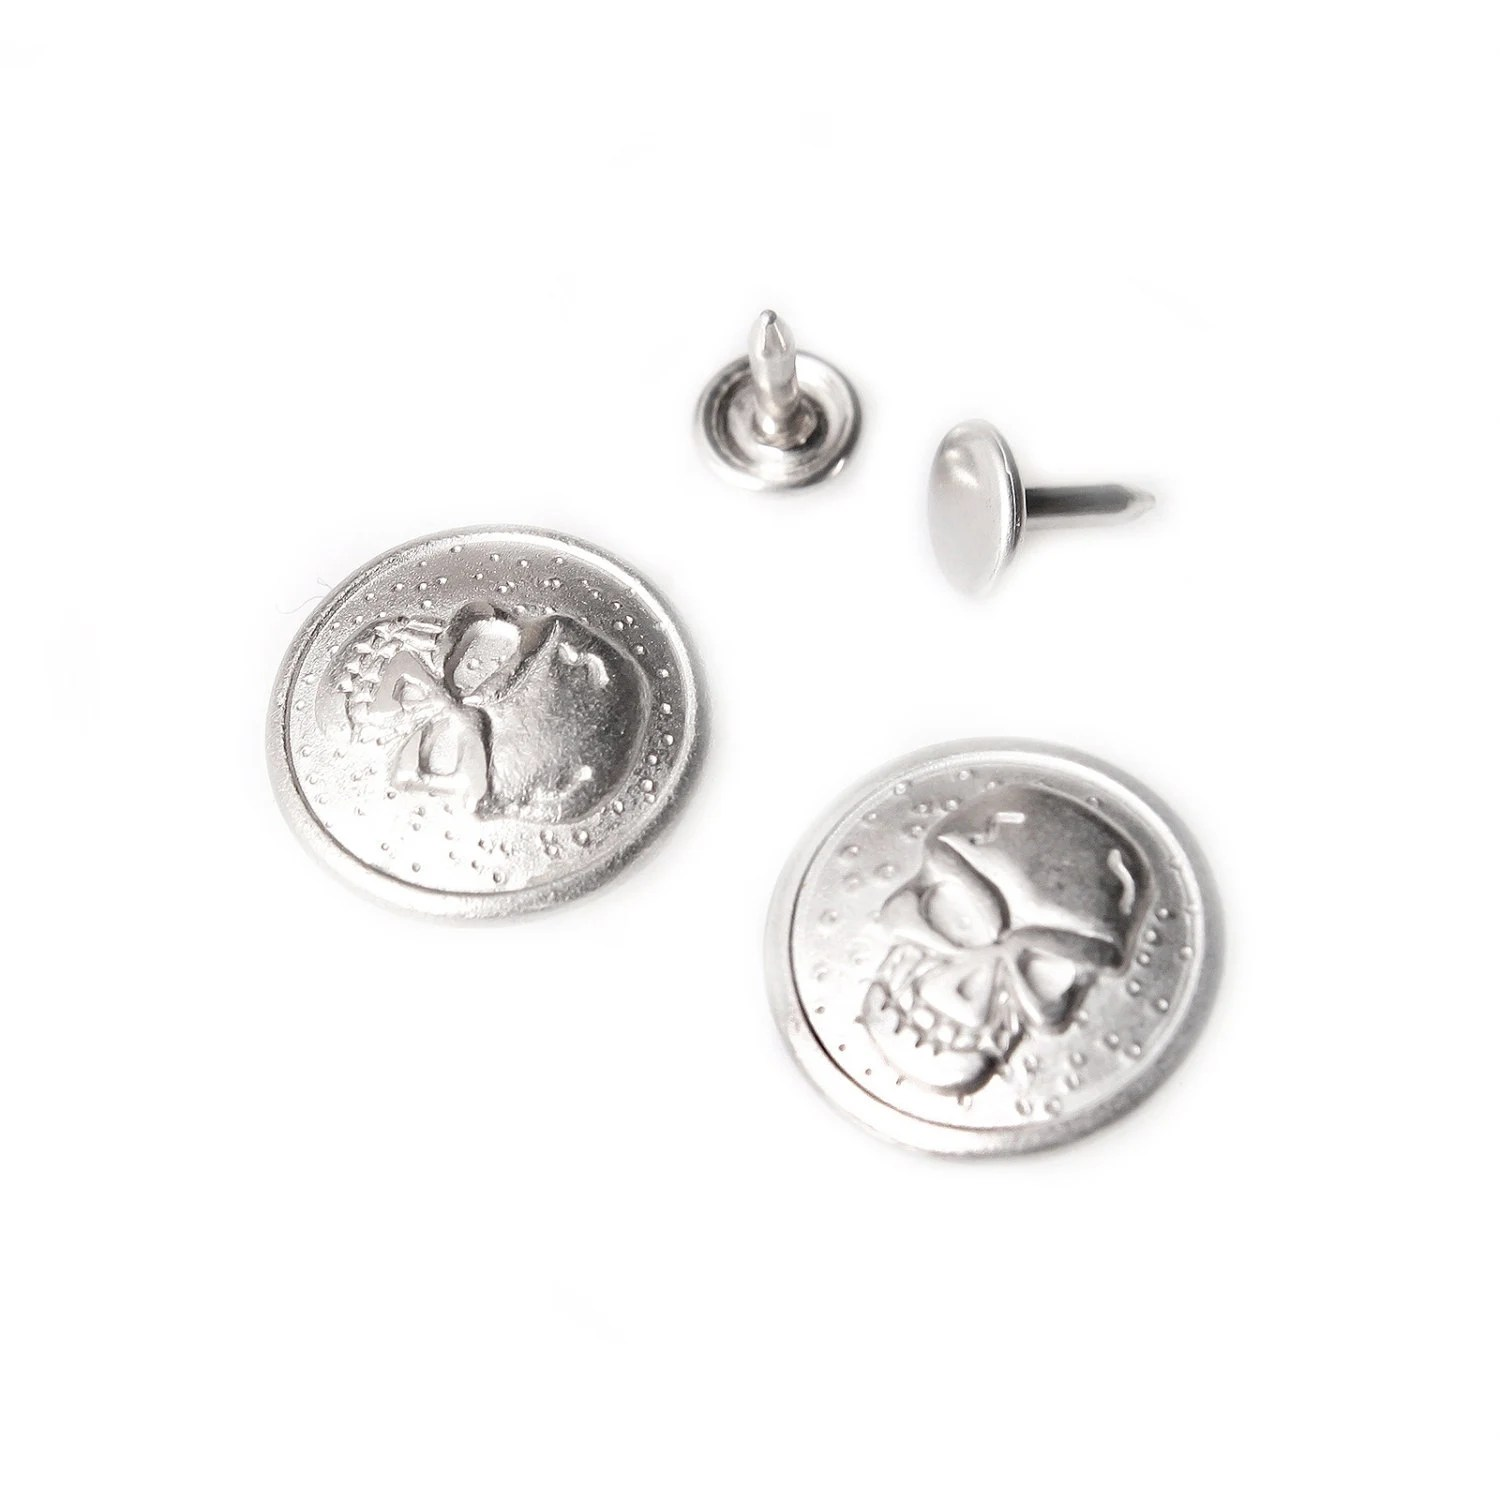 10 sets No Sew Replacement jean buttons skull by Starnights